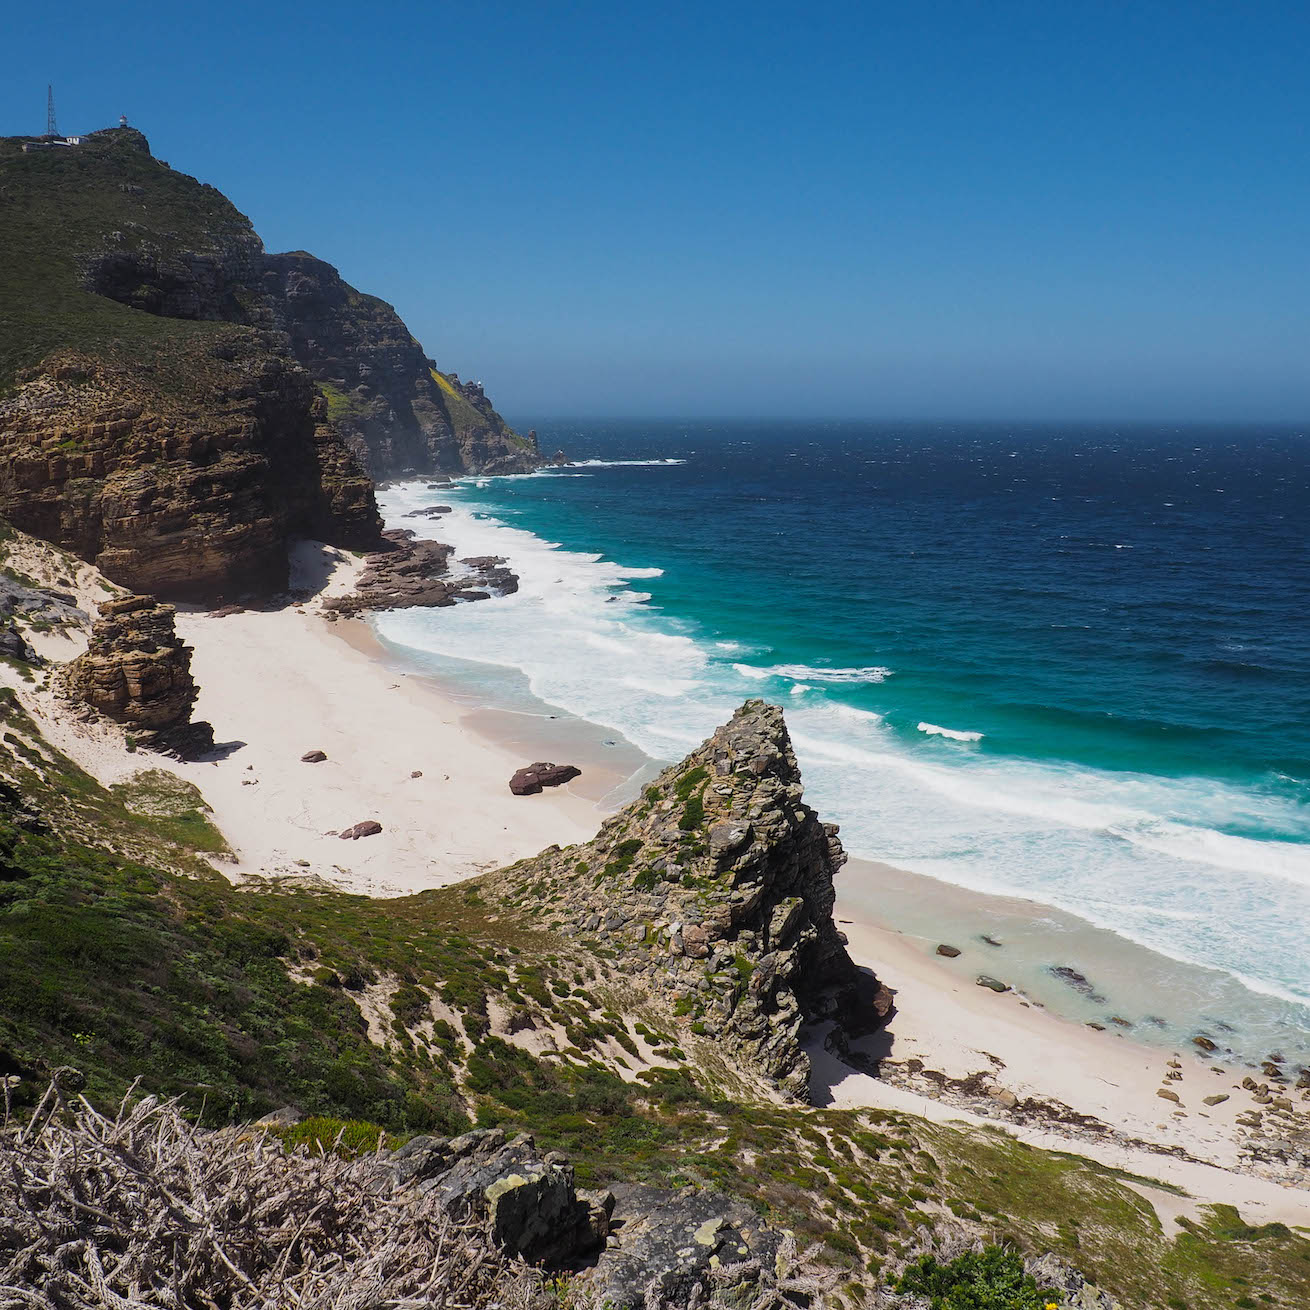 A scenic shot of Cape of Good Hope.